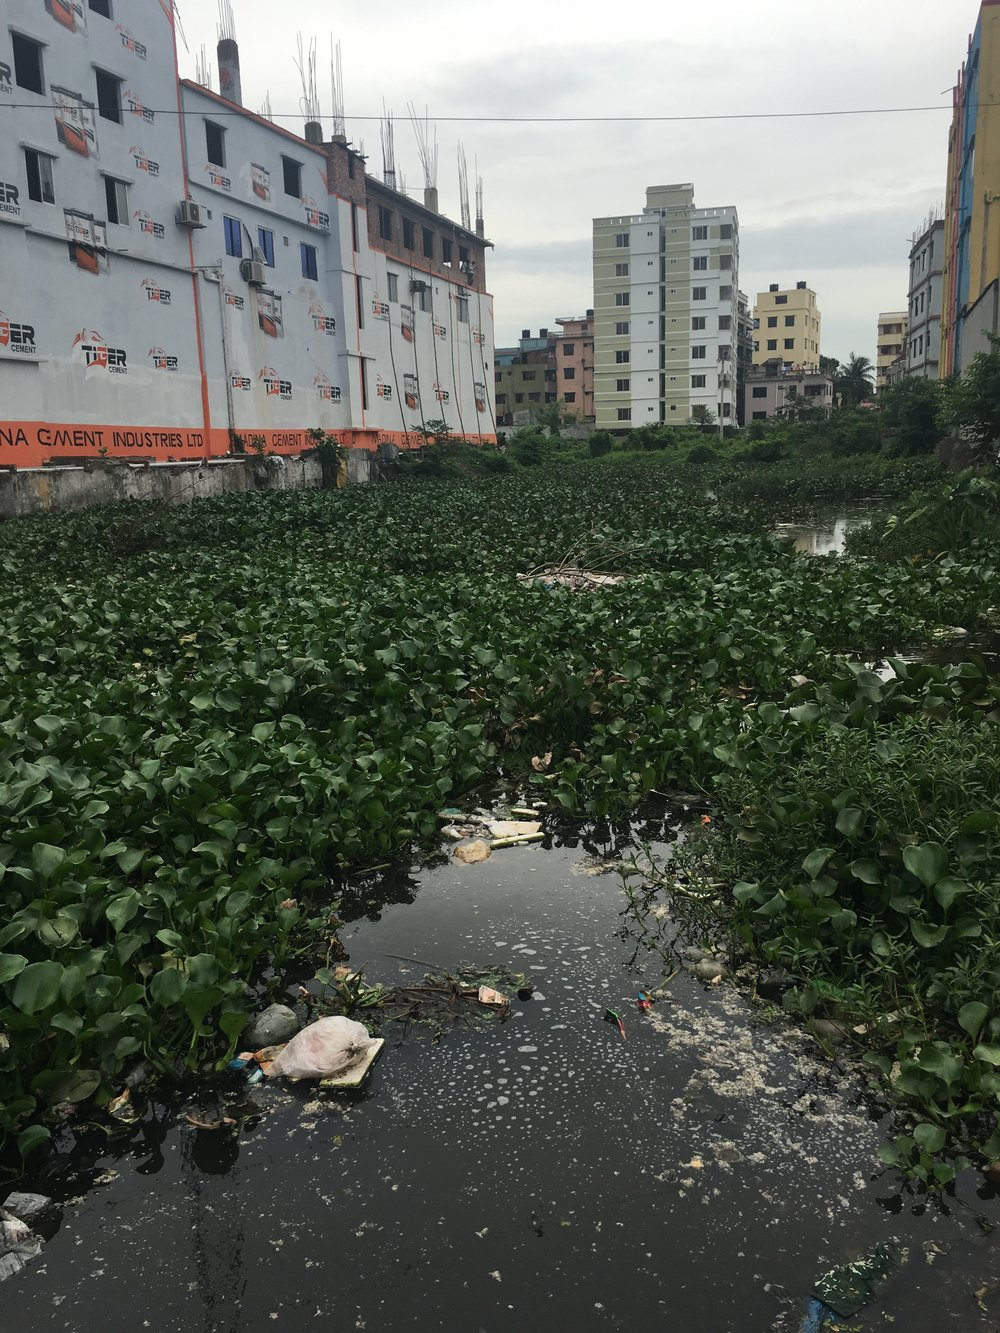 The still-vacant site of the Rana Plaza collapse, cleared of debris.